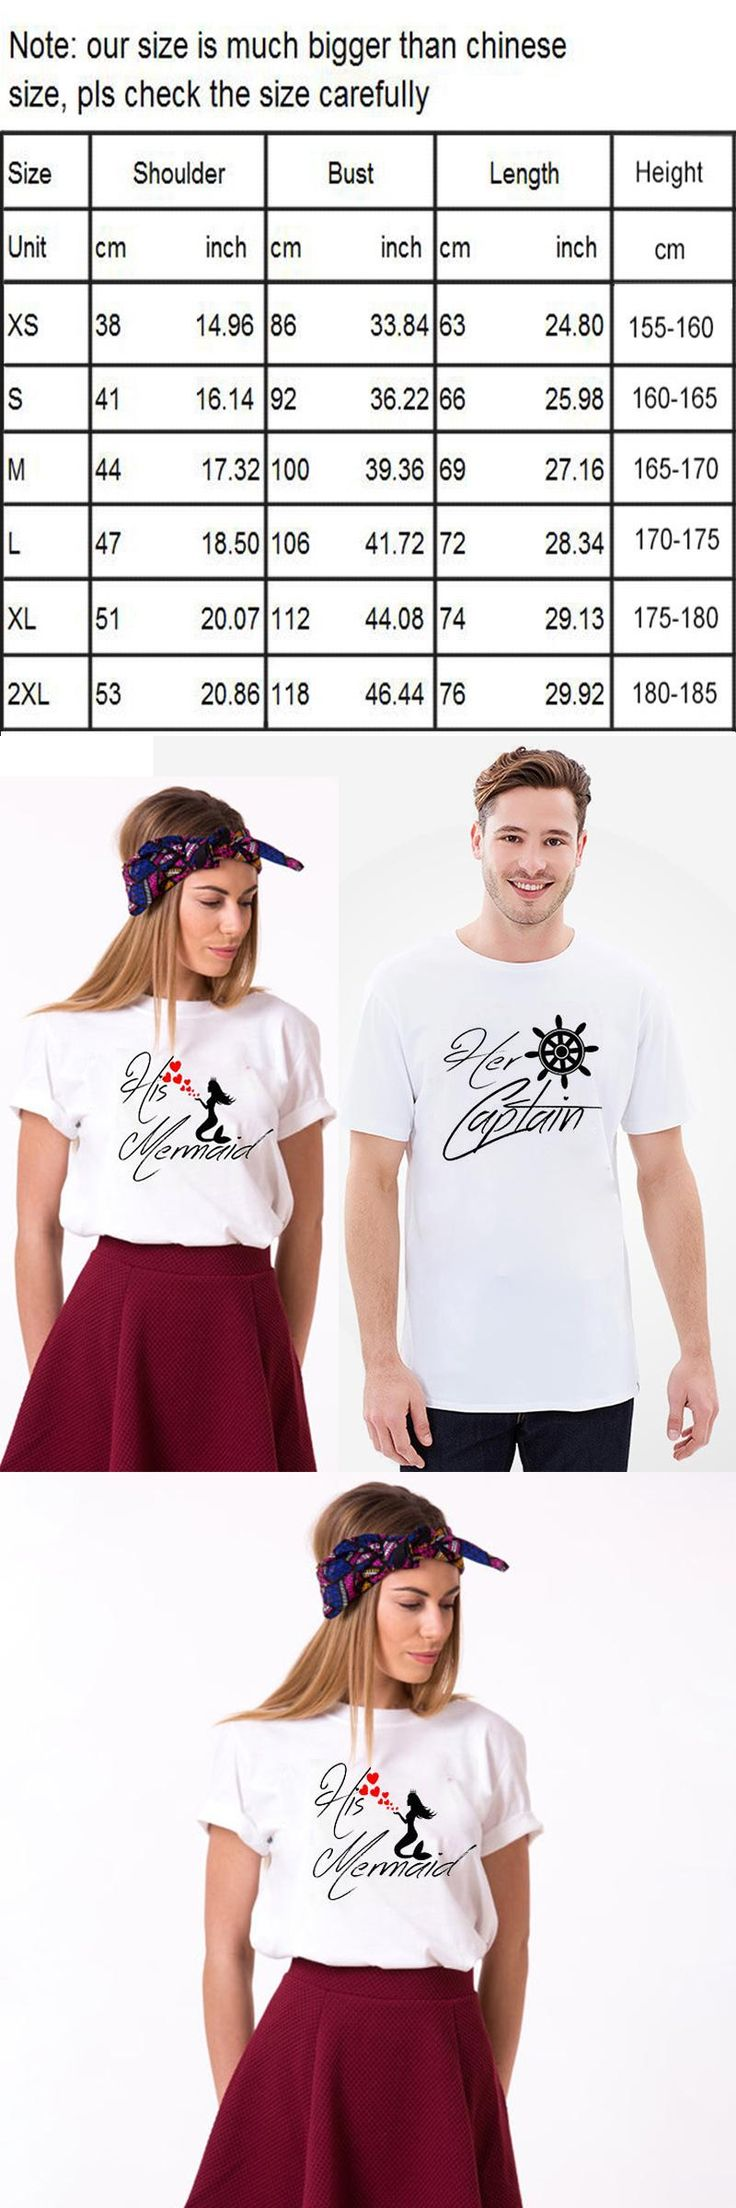 EnjoytheSpirit Matching Tshirts MR. and MRS. Tshirts for Couples Her Captain His Mermaid T-shirts Set Love Couple Tees